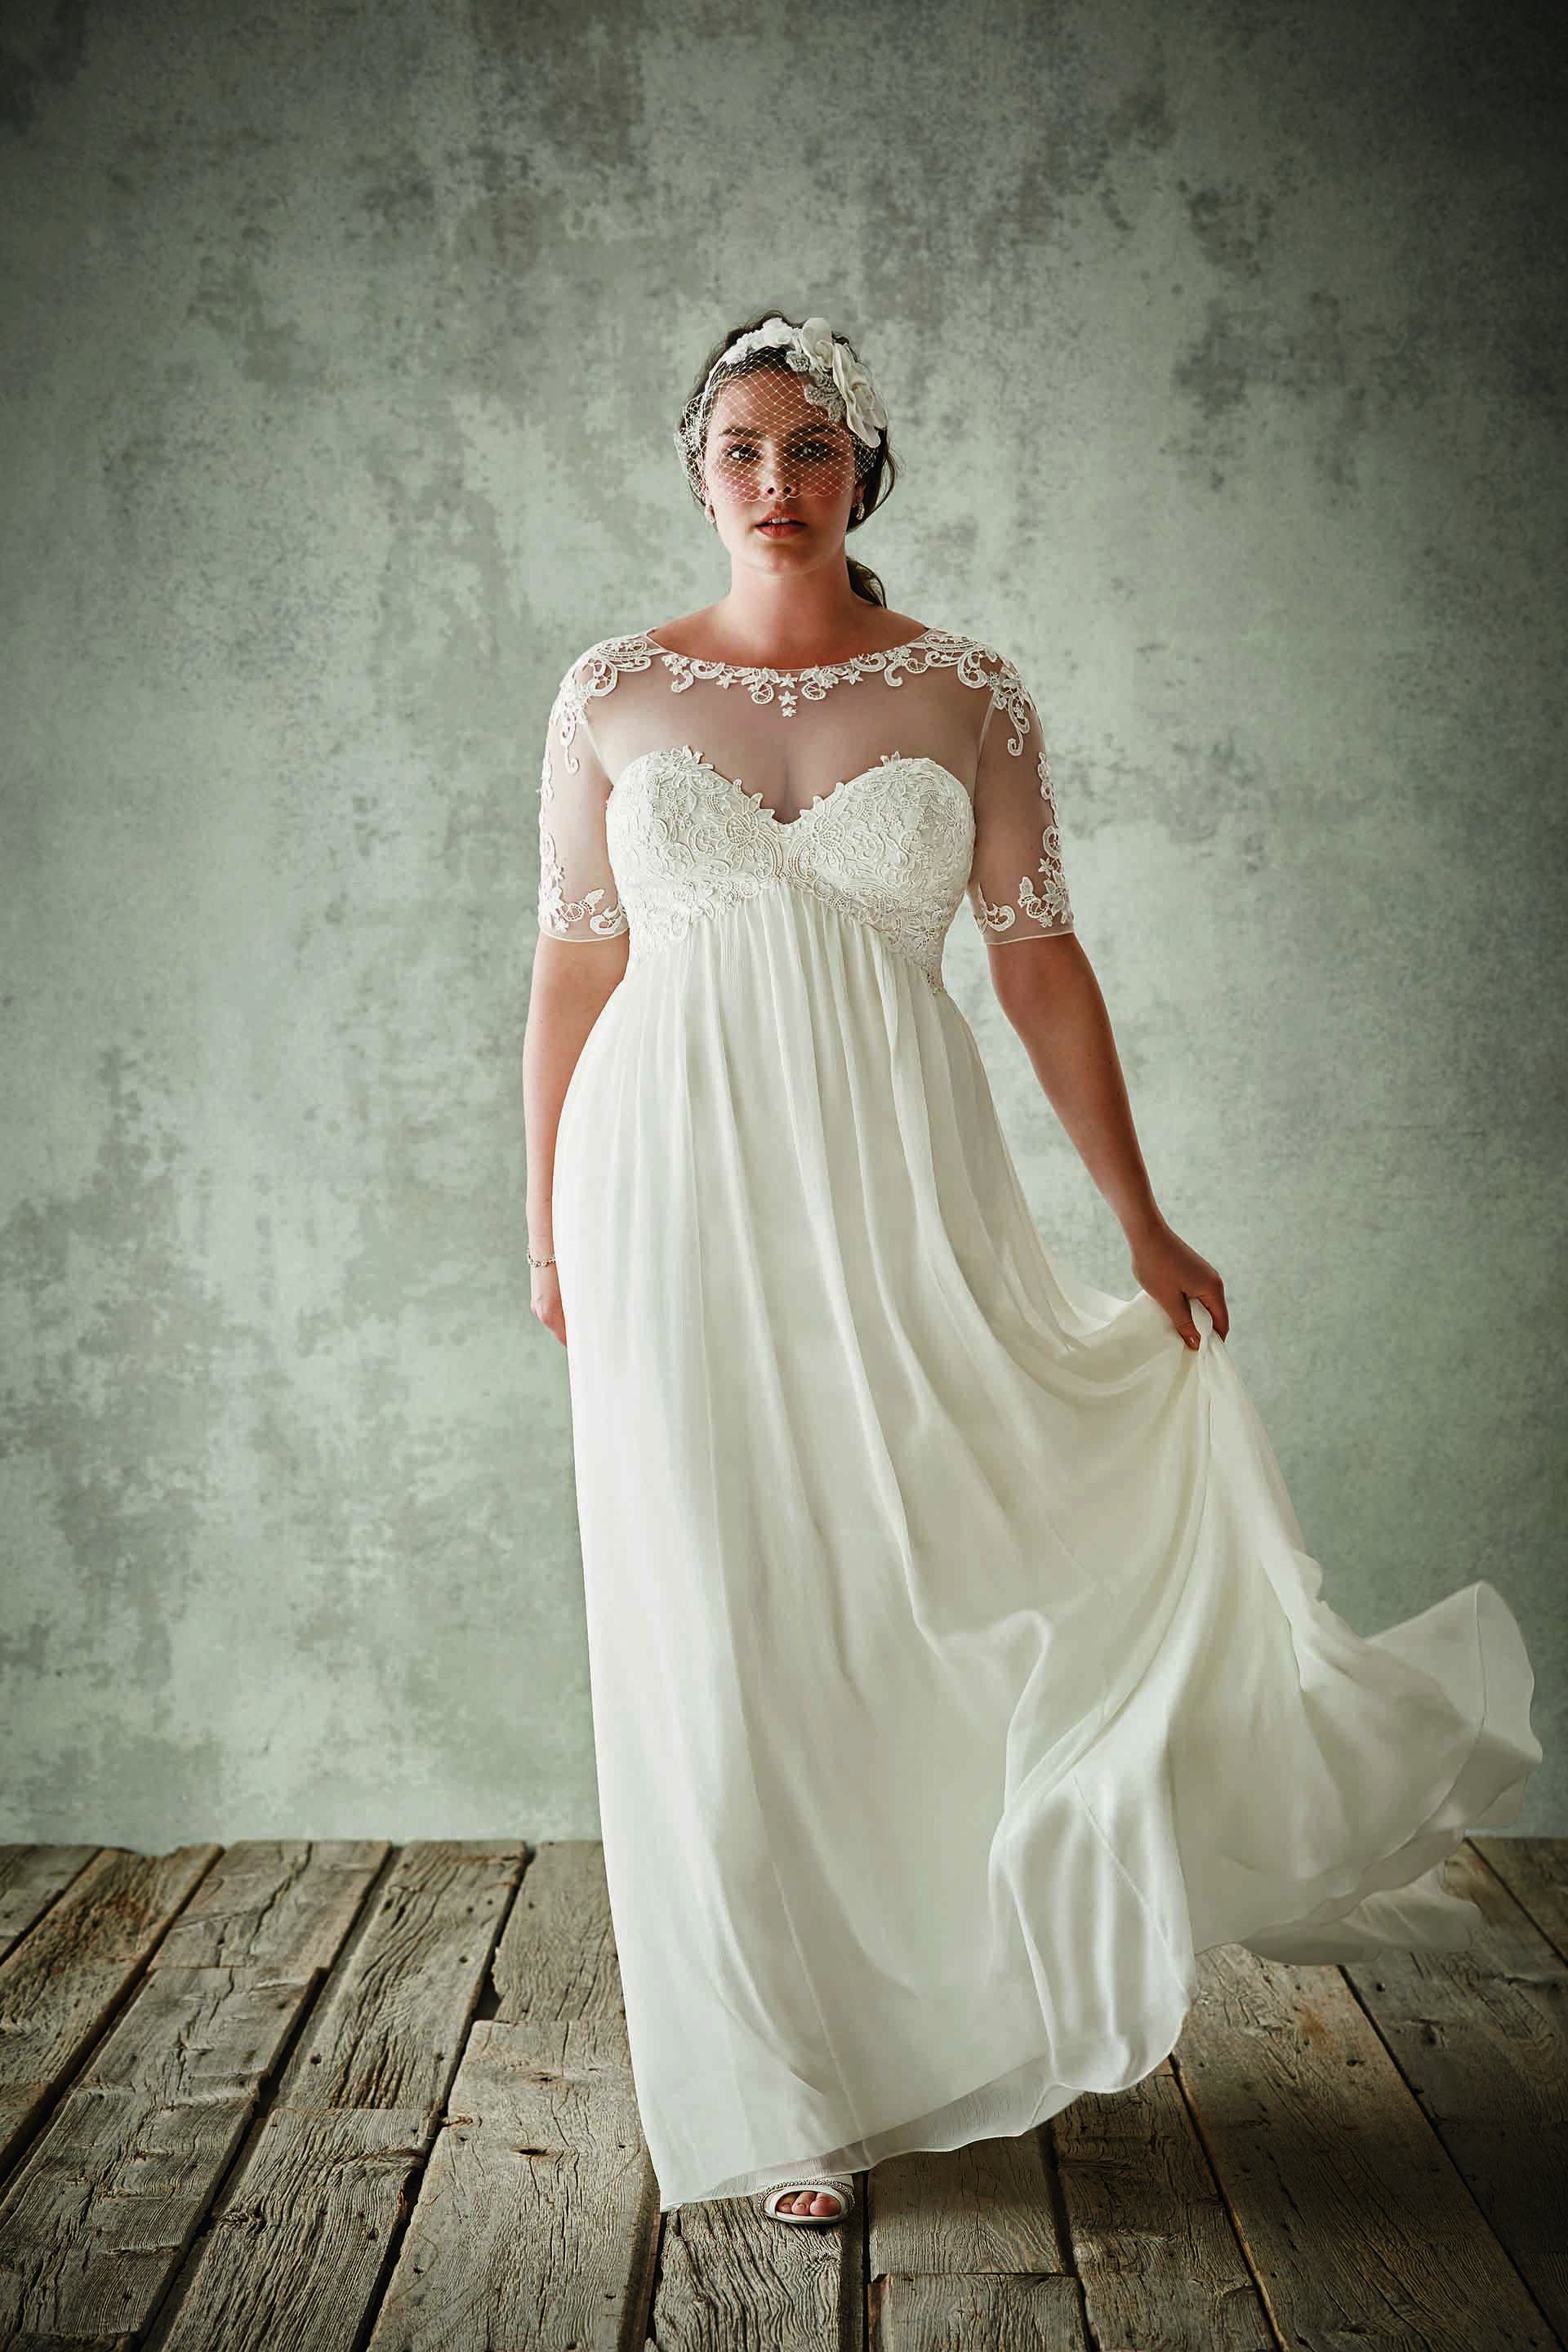 Newest Designing A Line Lace Appliqued Bridal Gowns Chiffon Empire ...